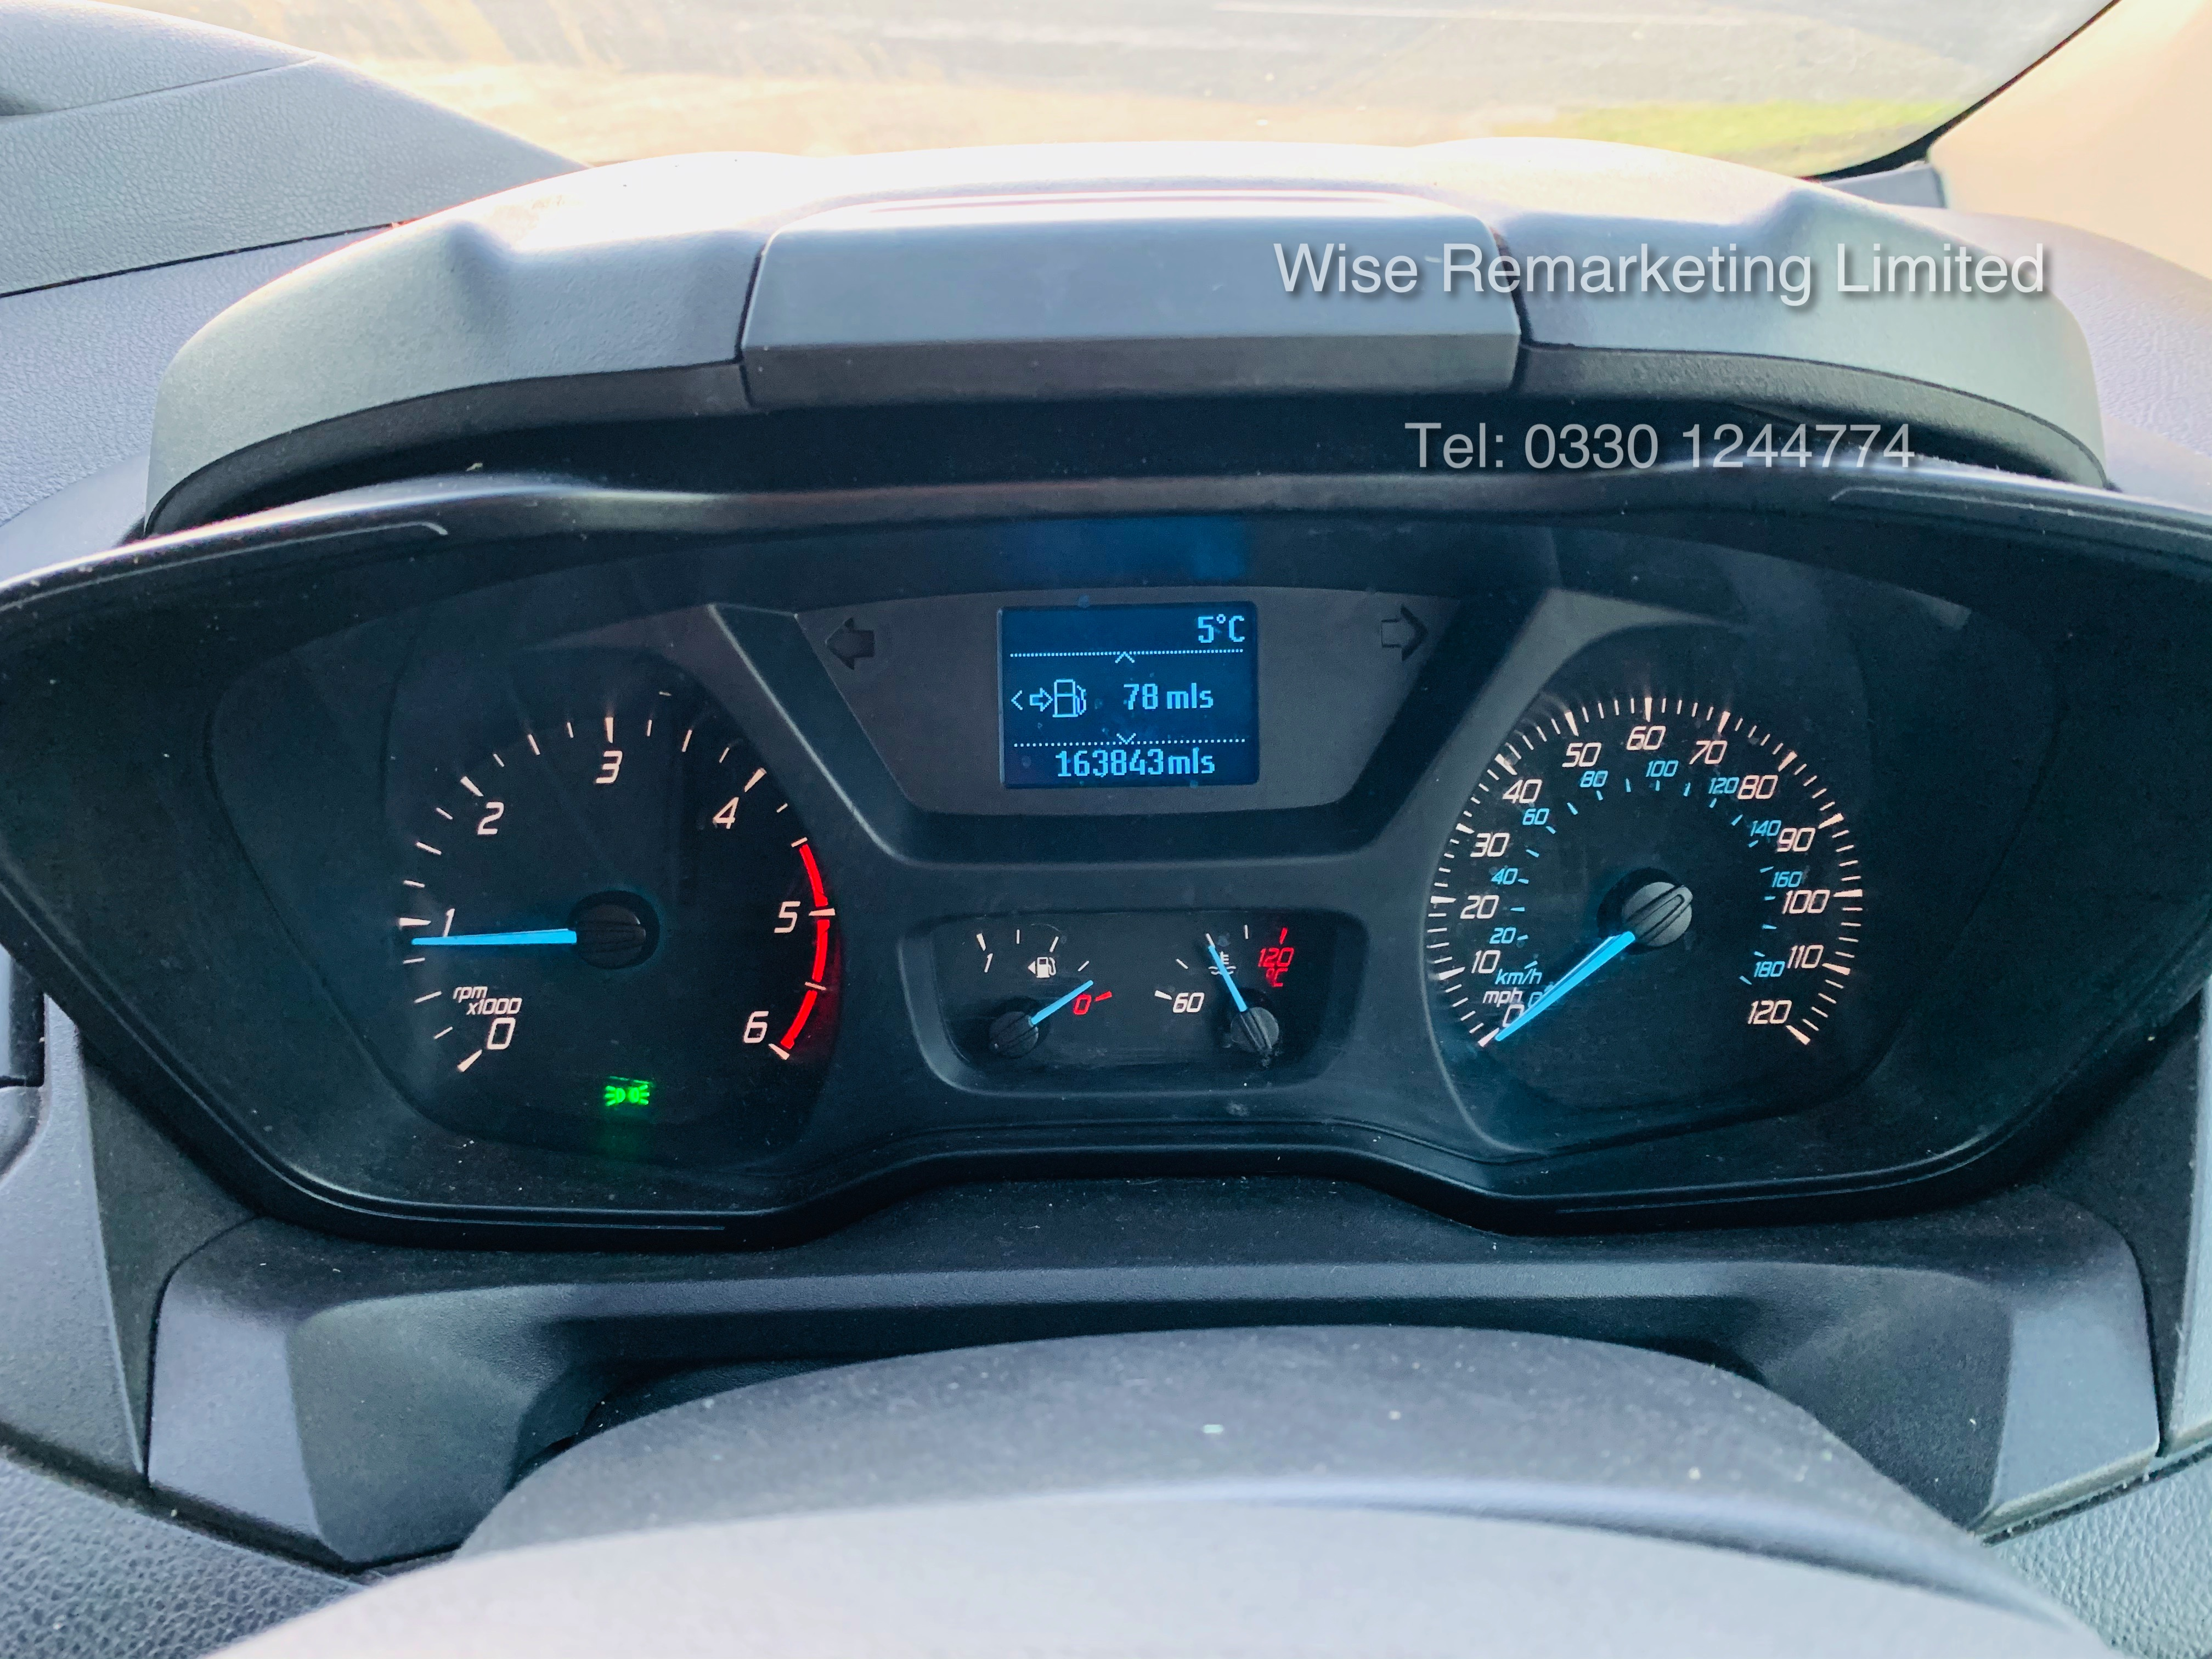 Ford Transit Custom 2.2 TDCI 310 Eco-Tech - 2016 Model - 1 Keeper From New - Air Con - Ex AA Van - Image 23 of 23